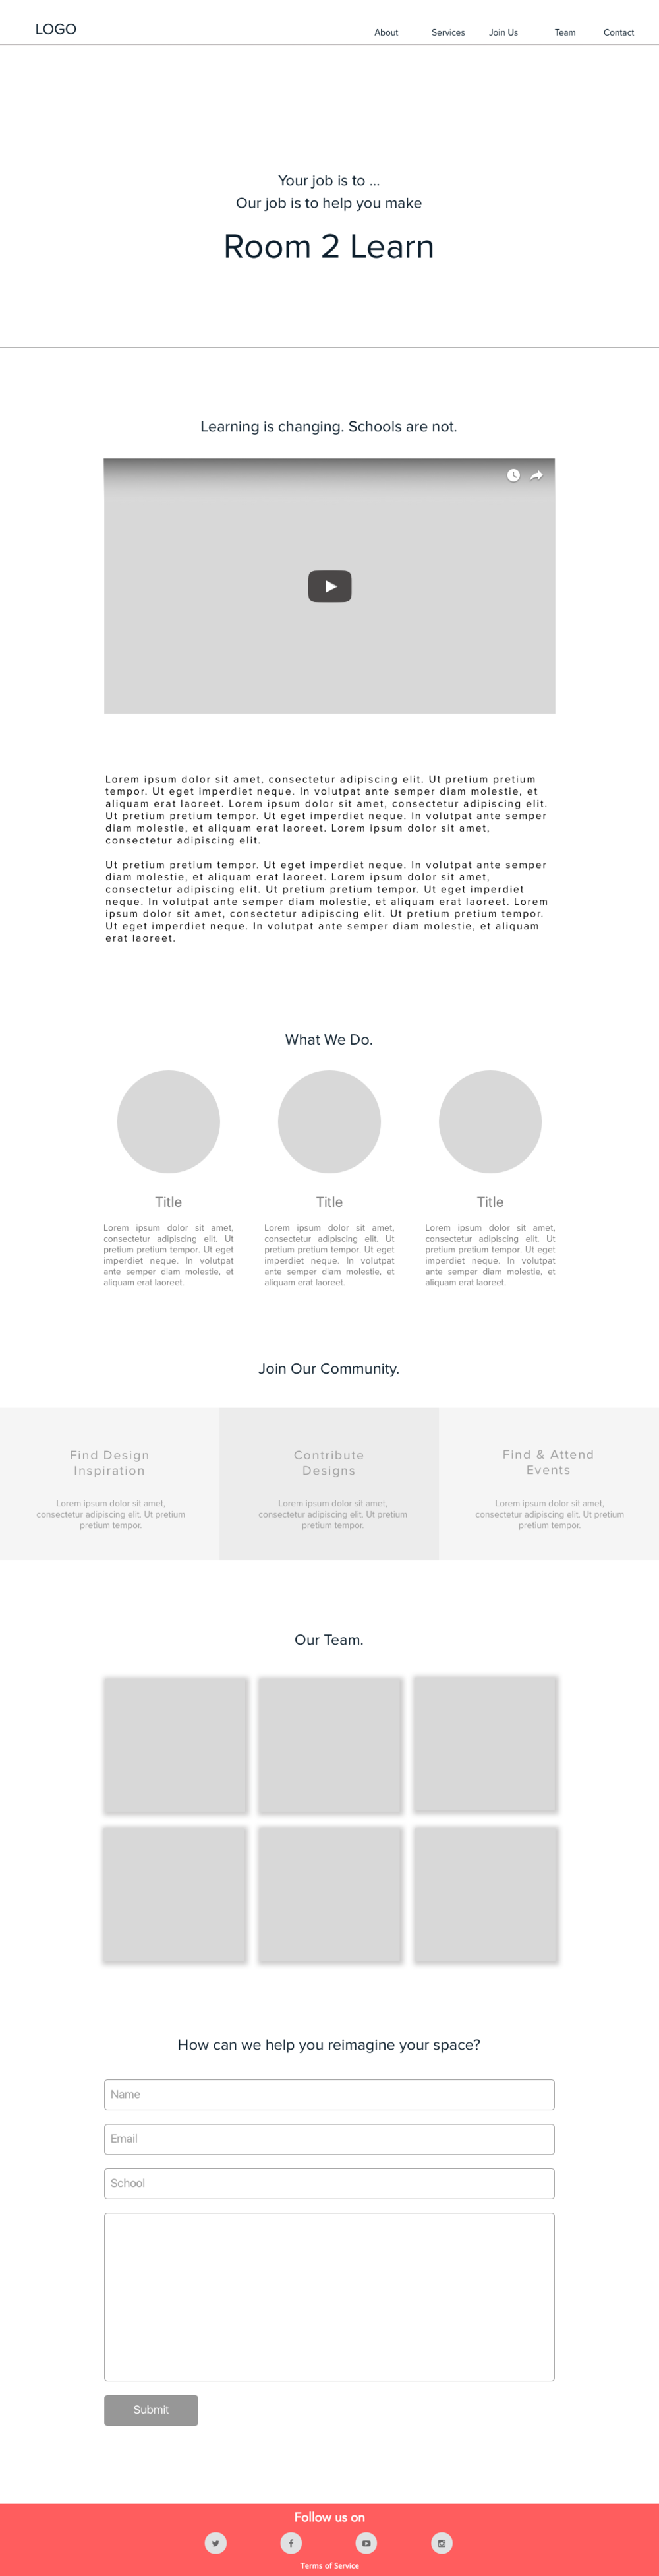 3. Wireframe of new homepage